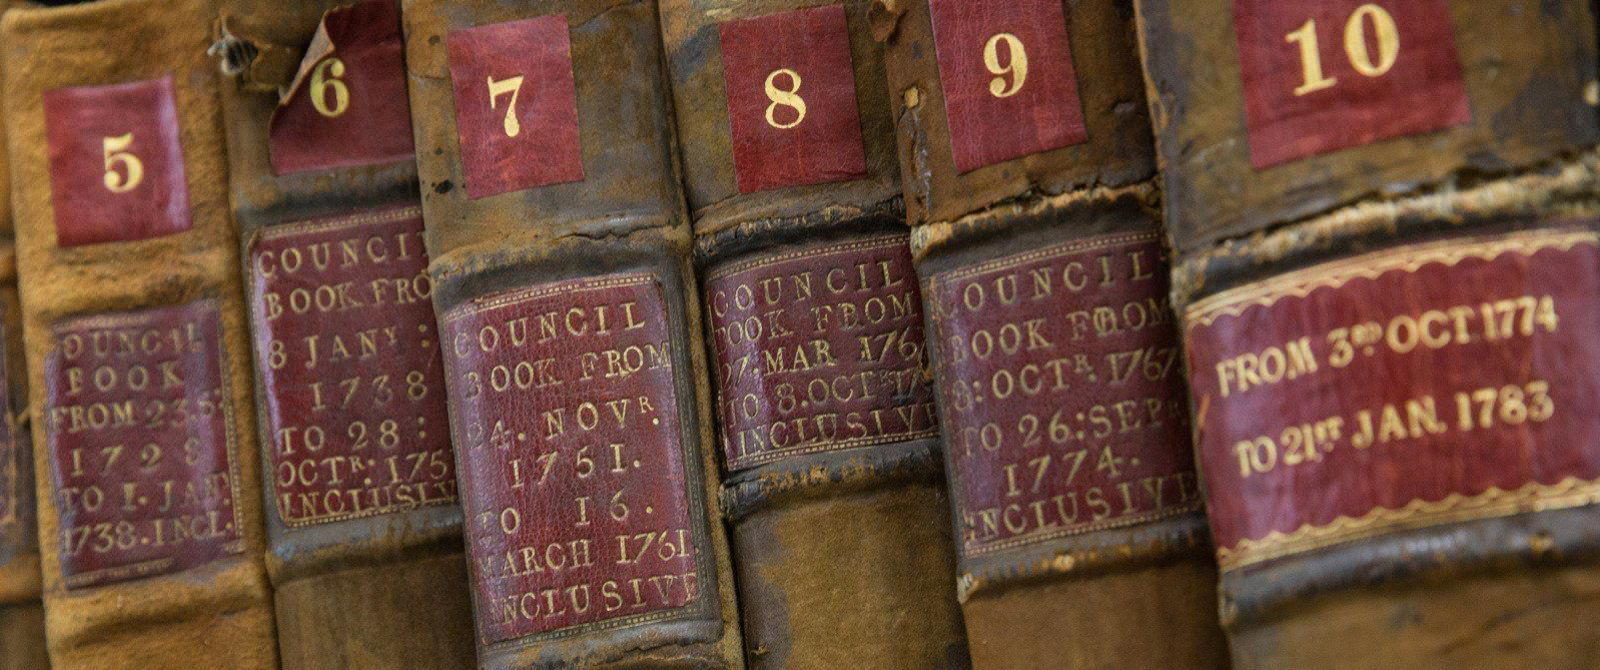 Photograph of old leather-bound volumes